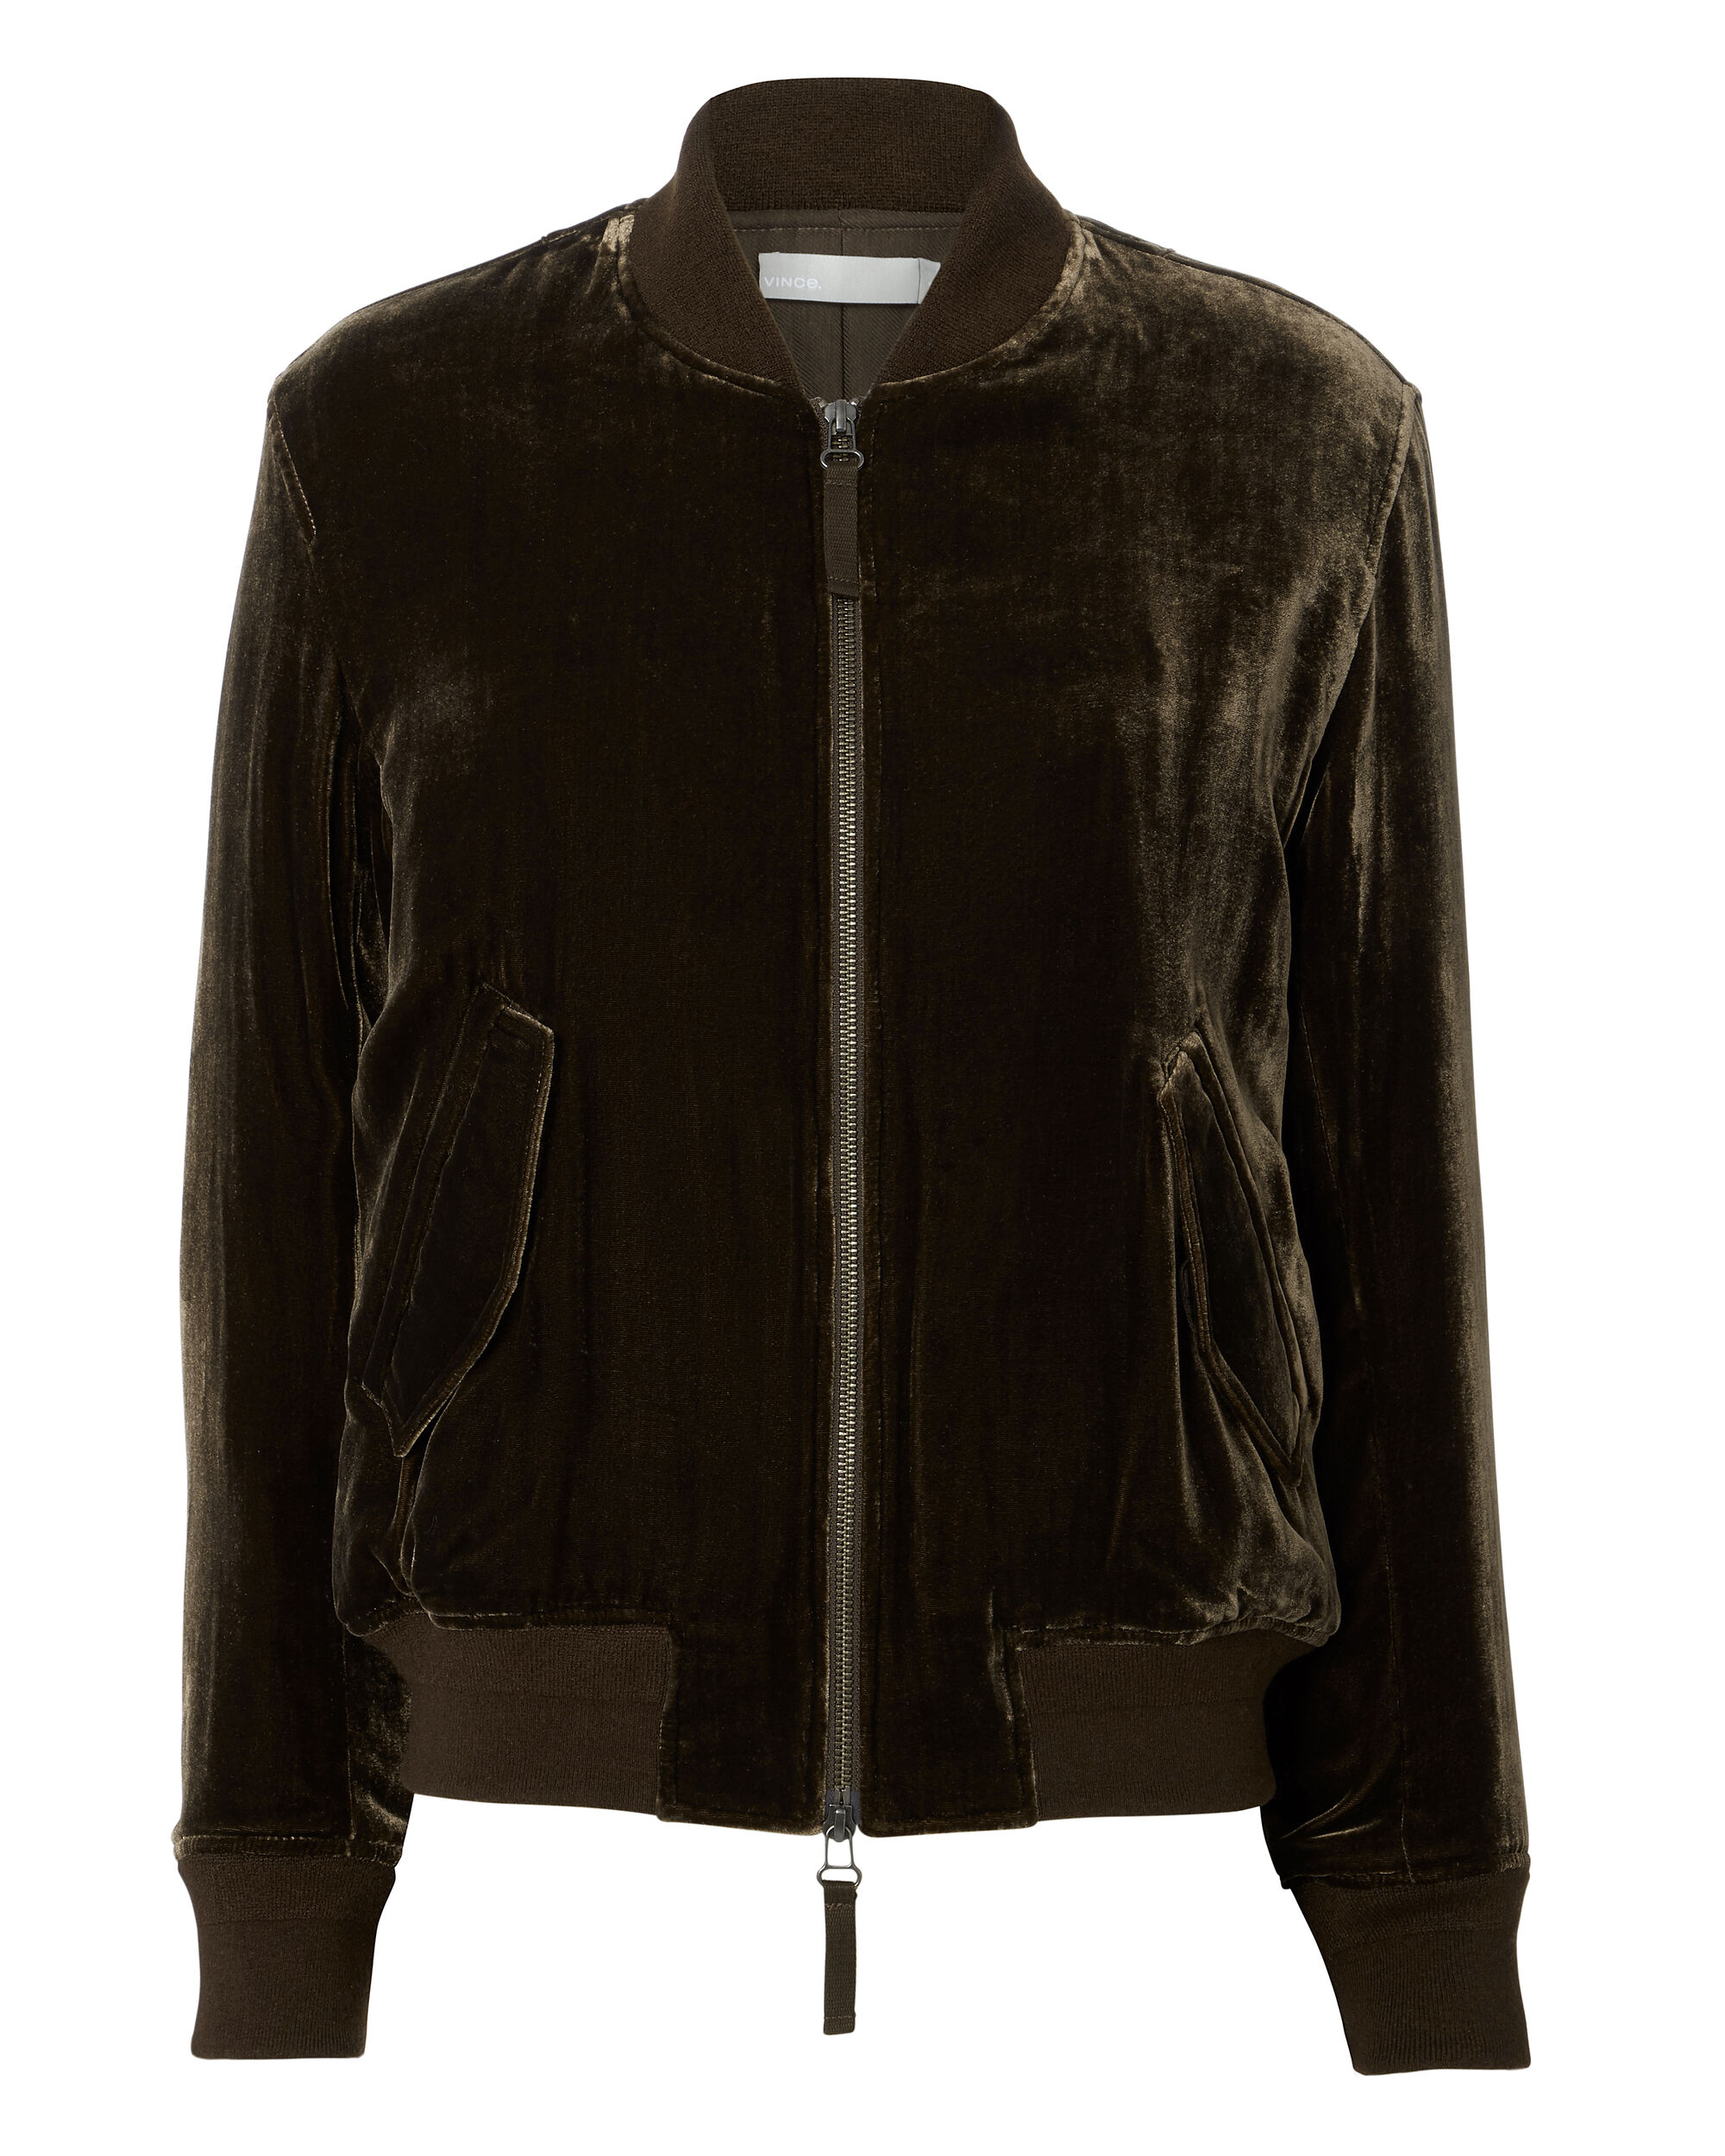 Saddle Velvet Bomber Jacket, BROWN, hi-res